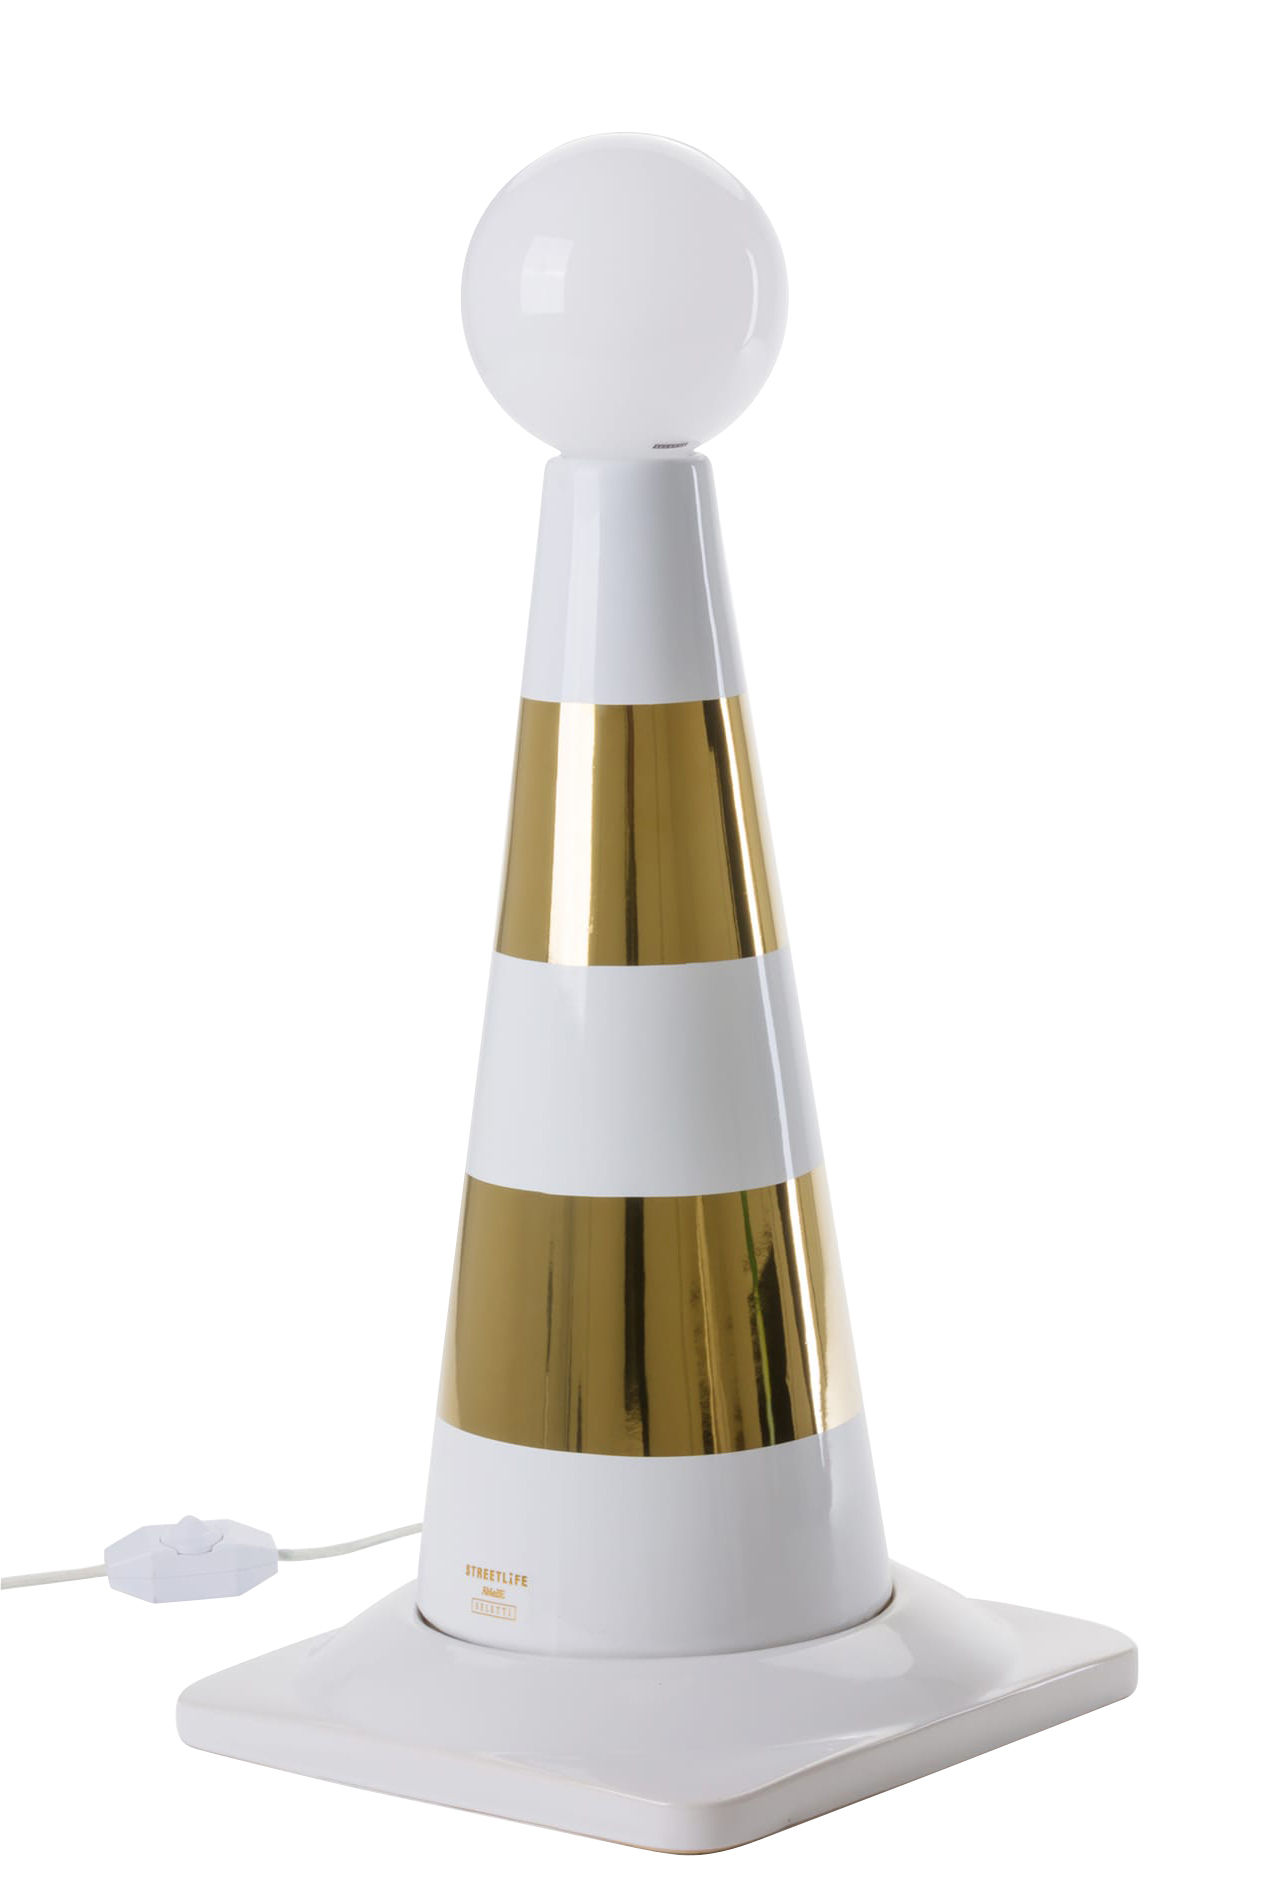 Lighting - Table Lamps - Street Life Table lamp - Porcelain - H 48,5 cm by Seletti - White and gold - China